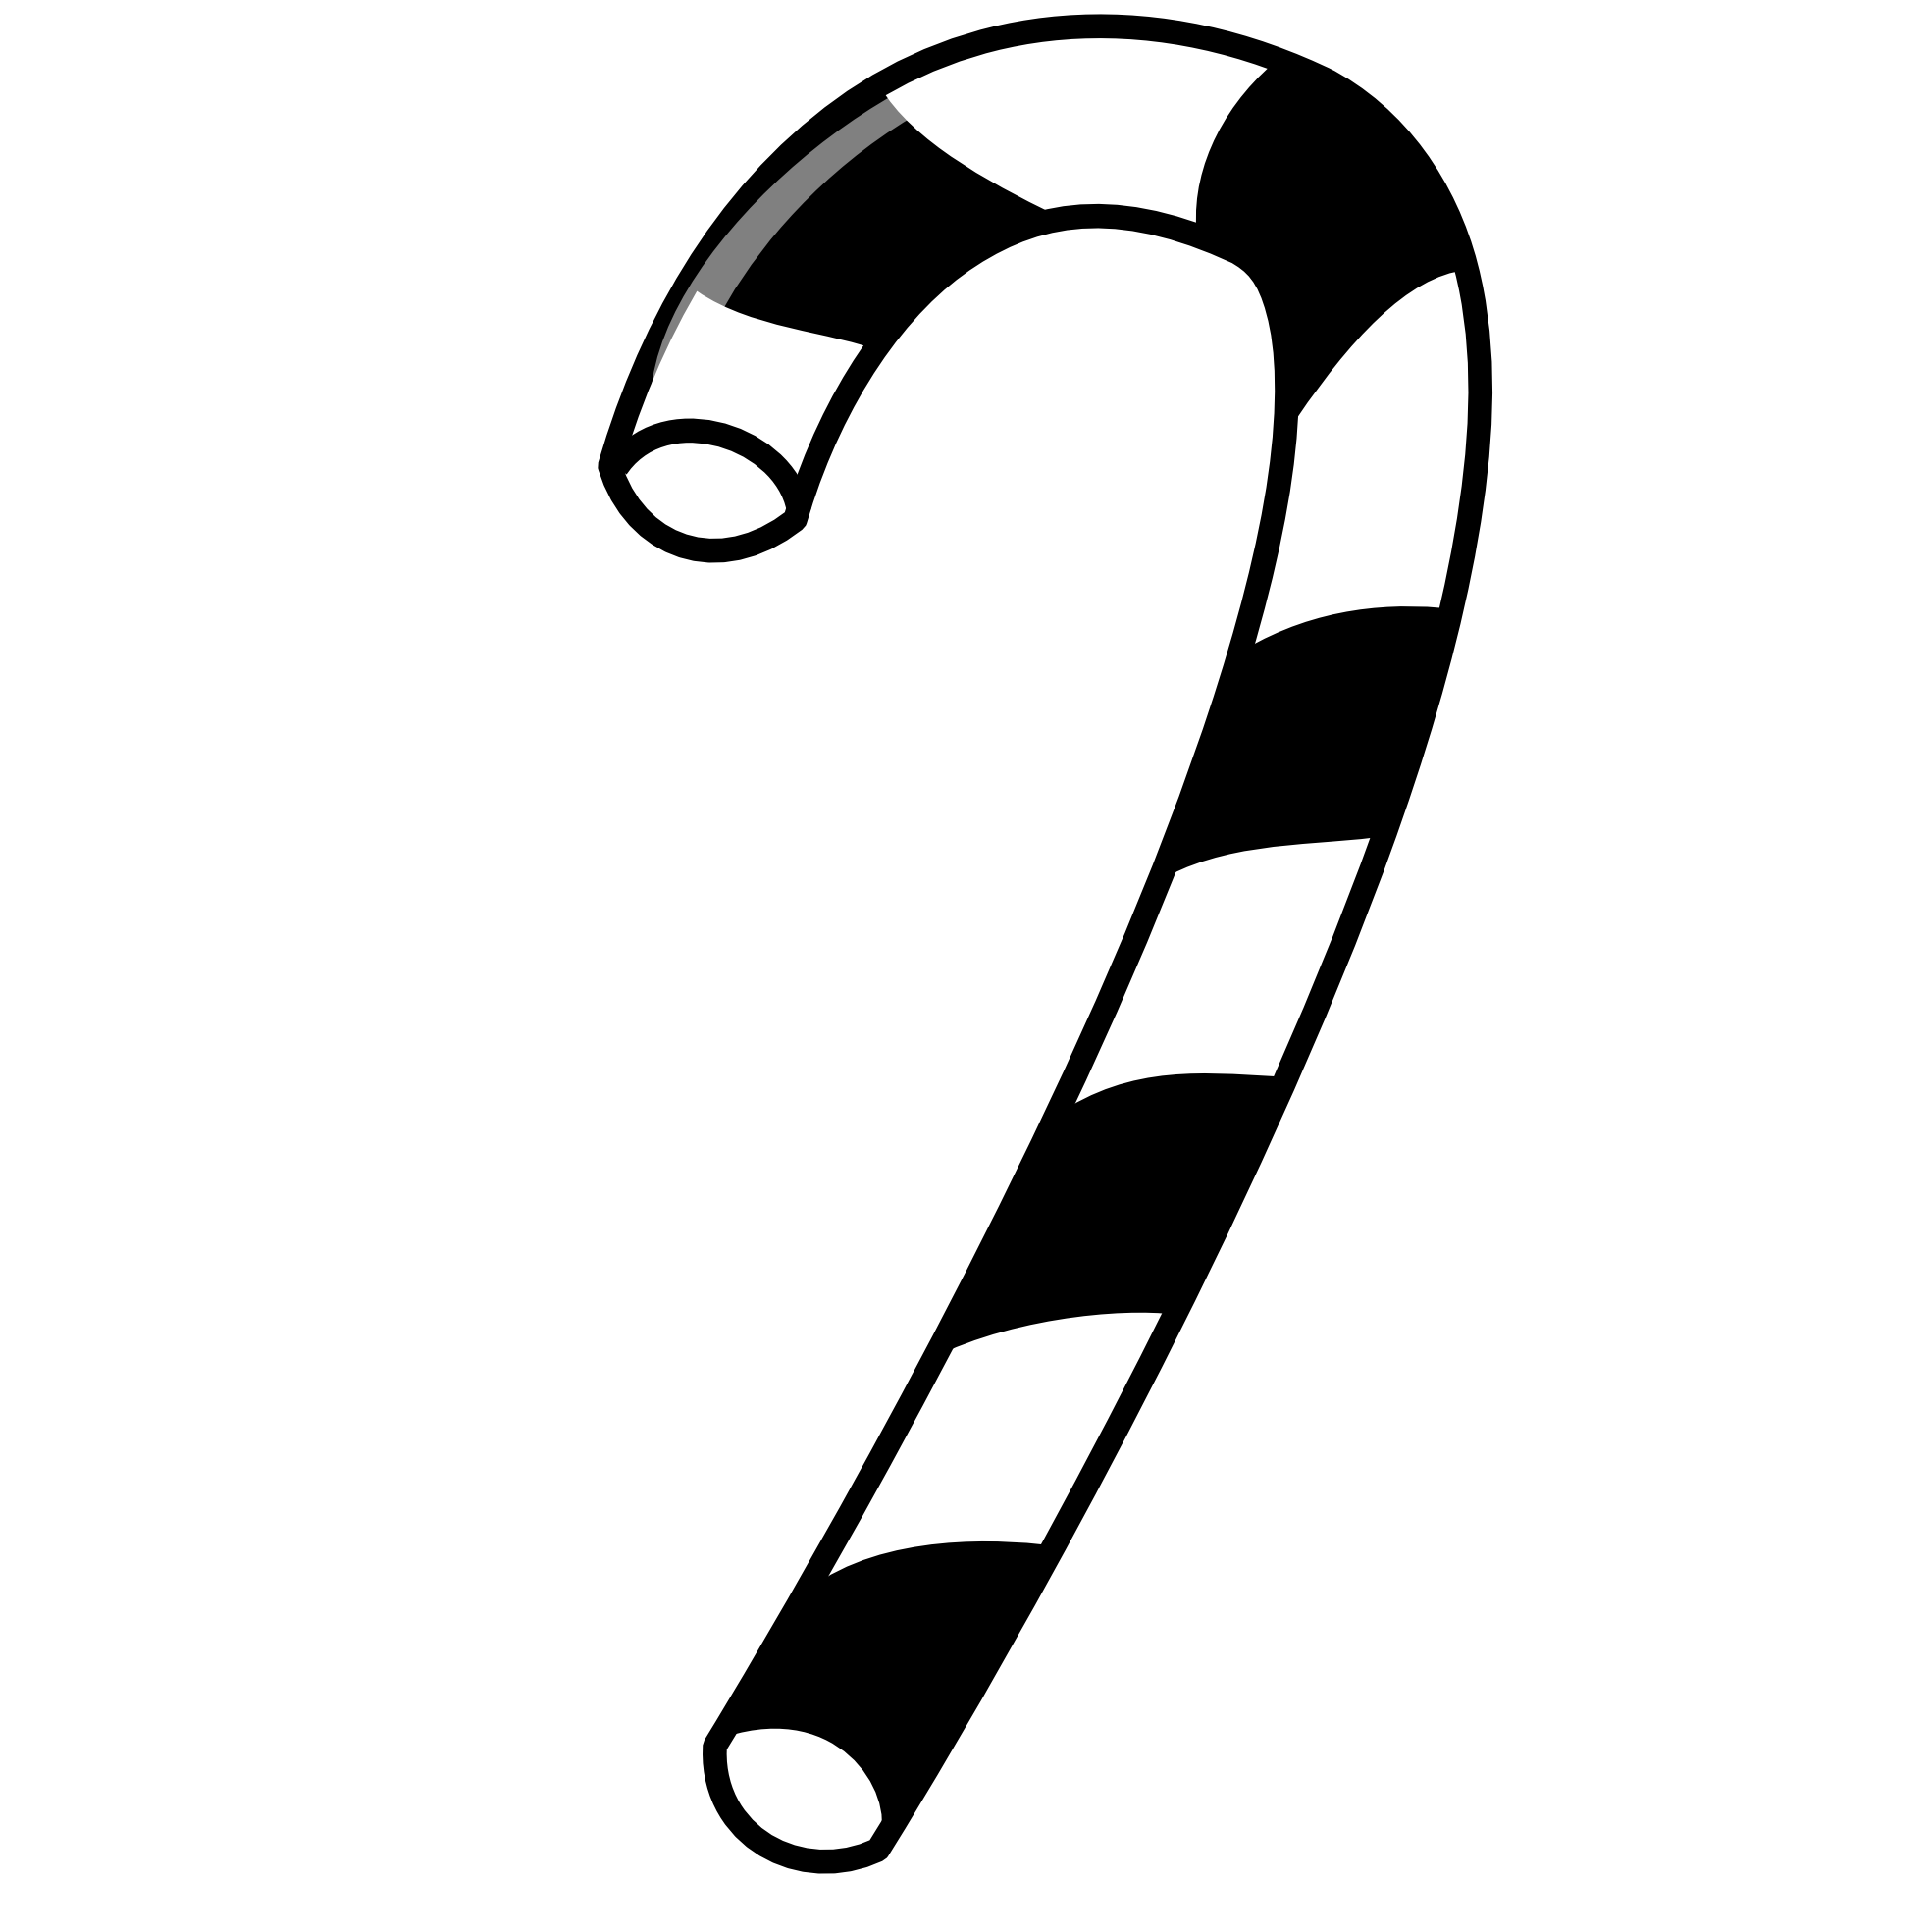 Free clipart christmas black and white candy cane. Xmas